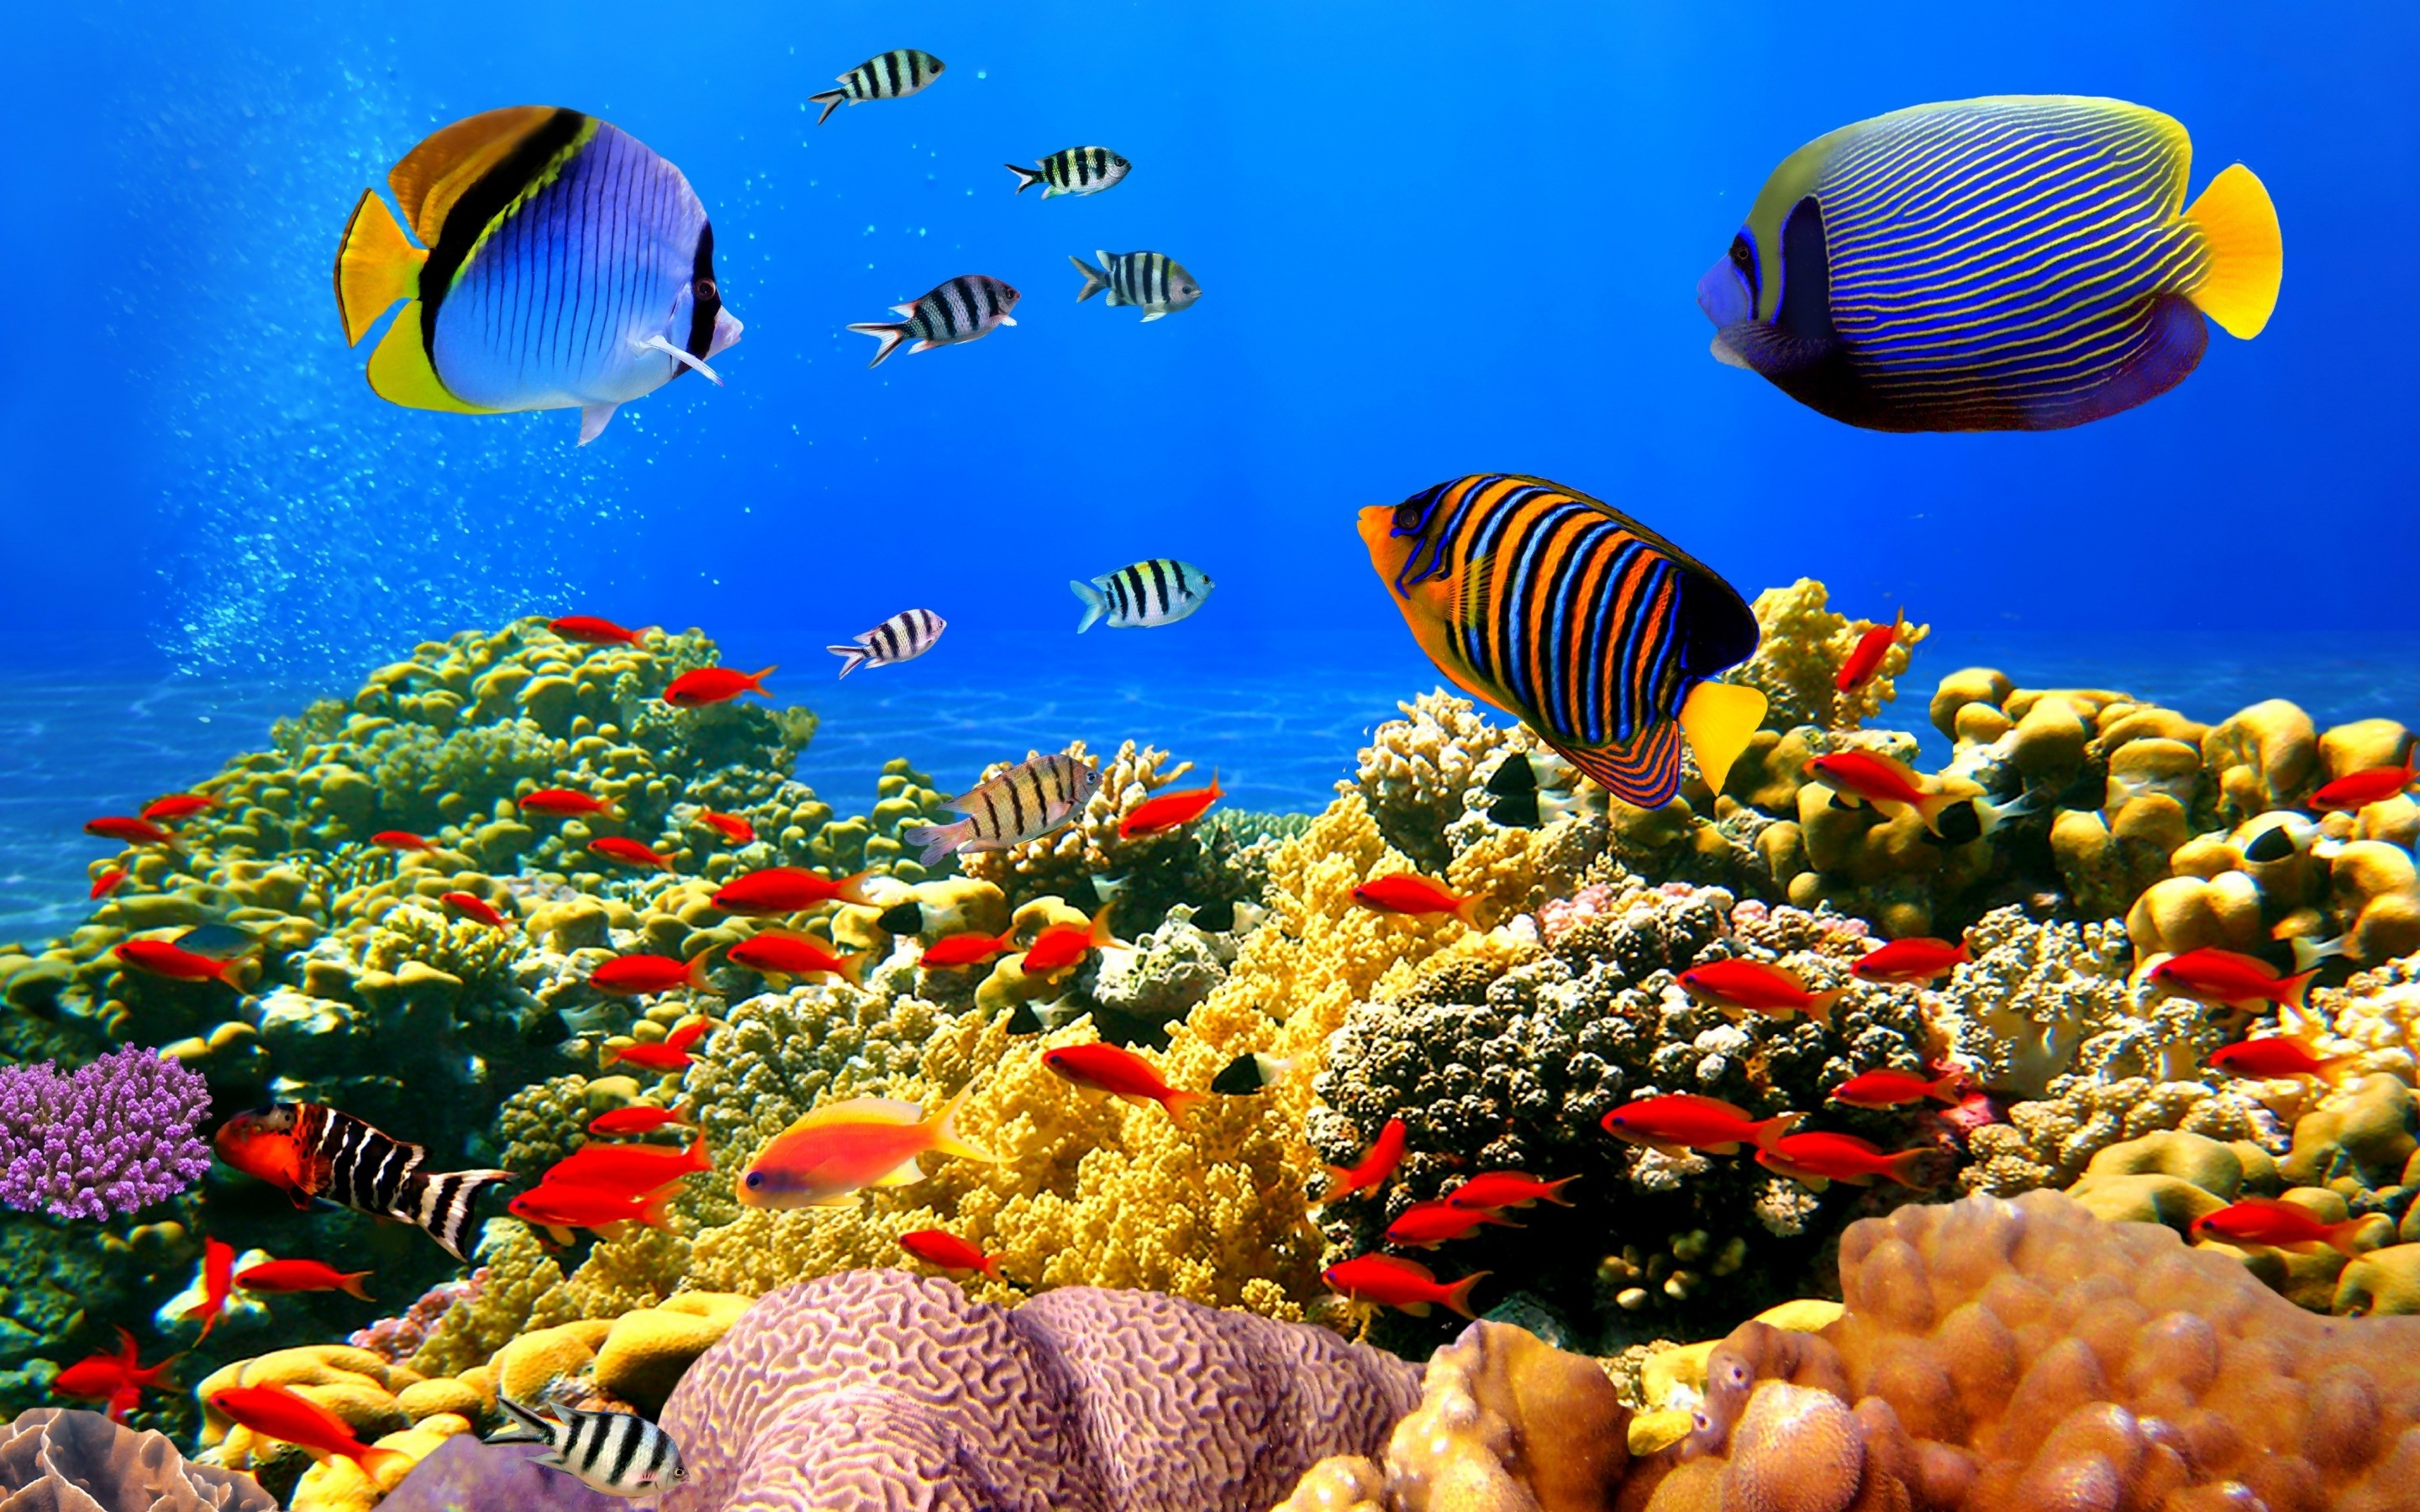 Coral reef wallpaper hd 65 images - Underwater desktop background ...